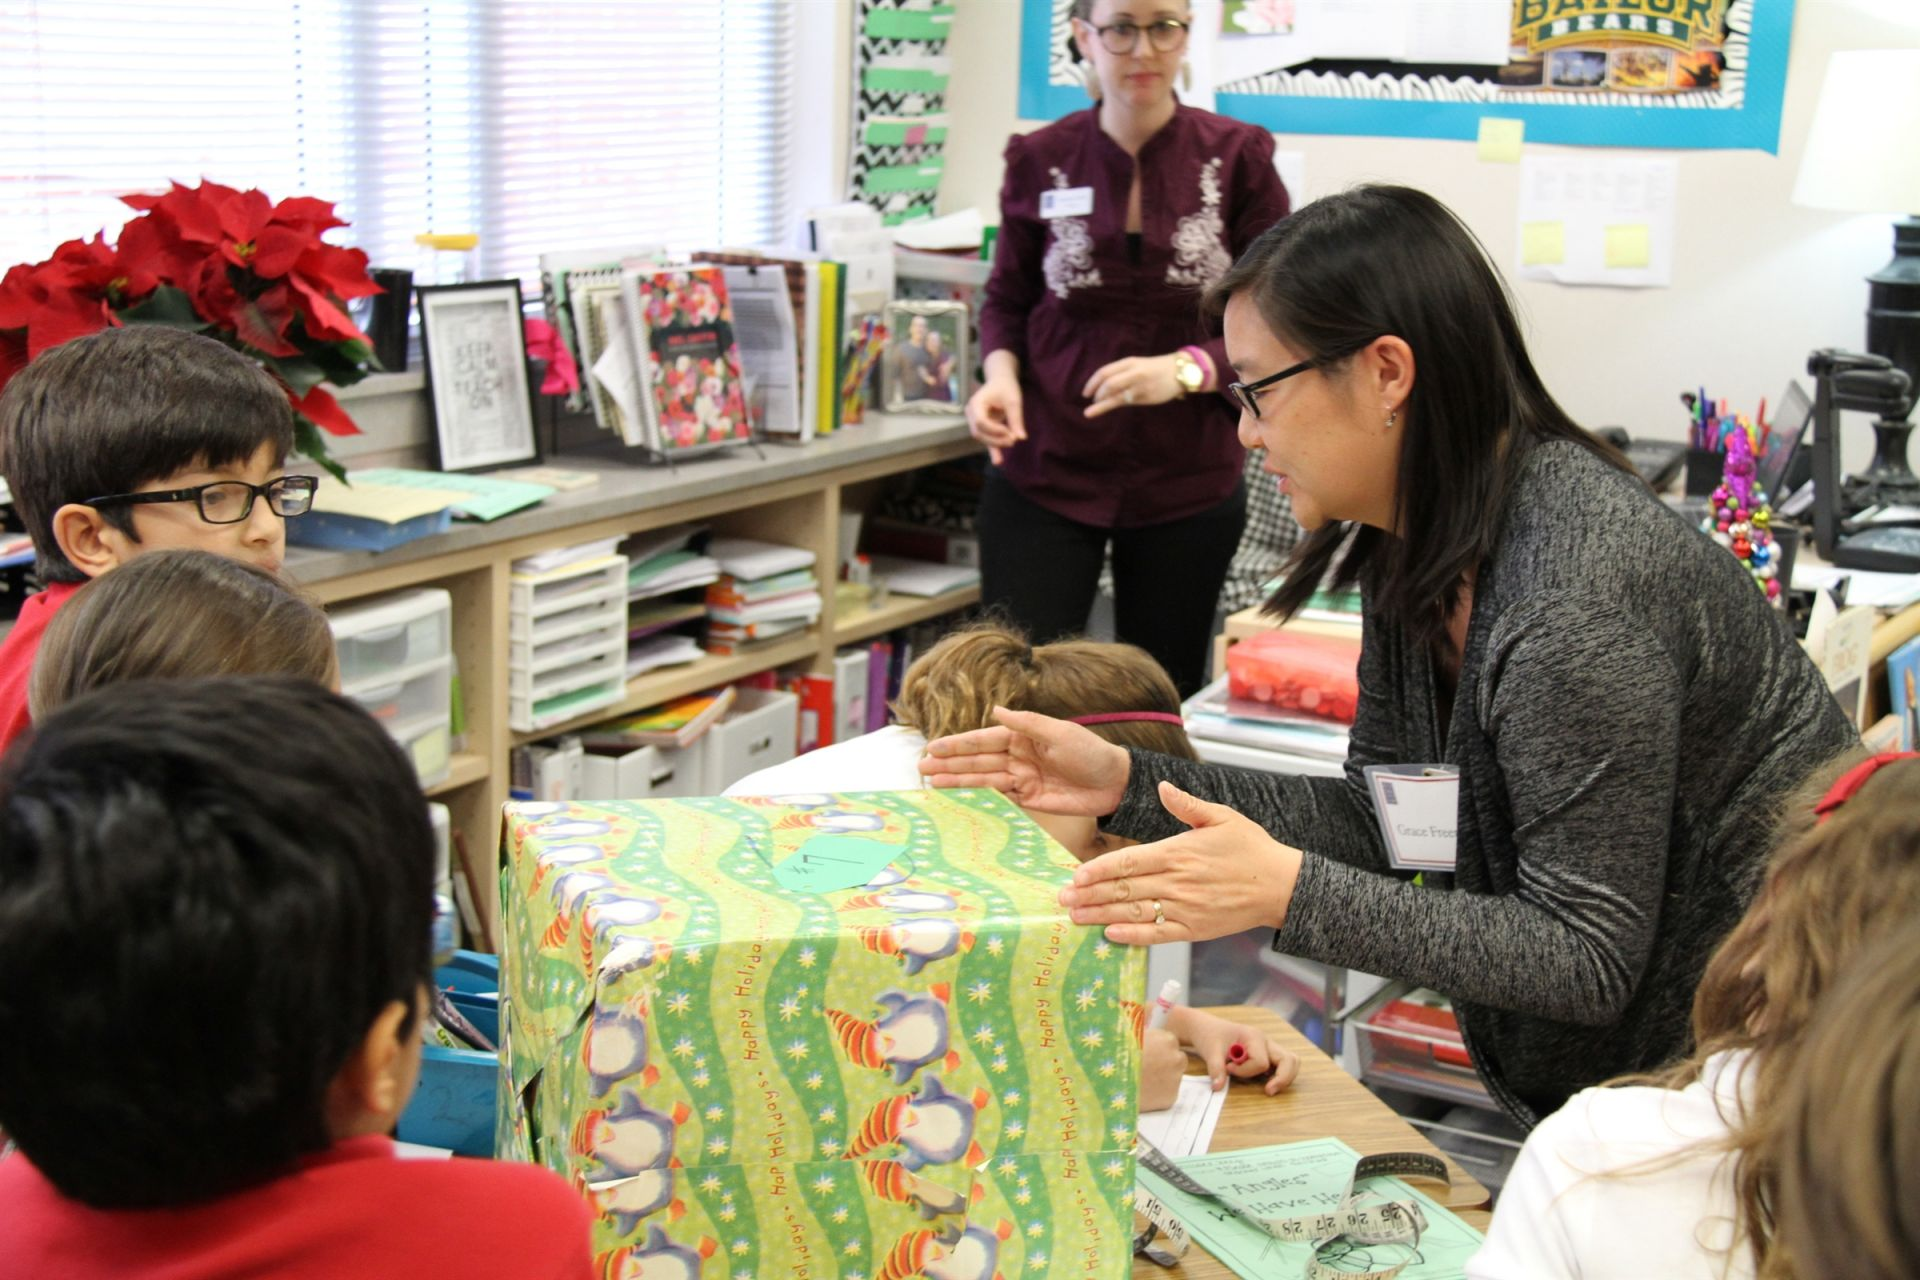 Students learn to apply math to real-world situations like wrapping Christmas presents.